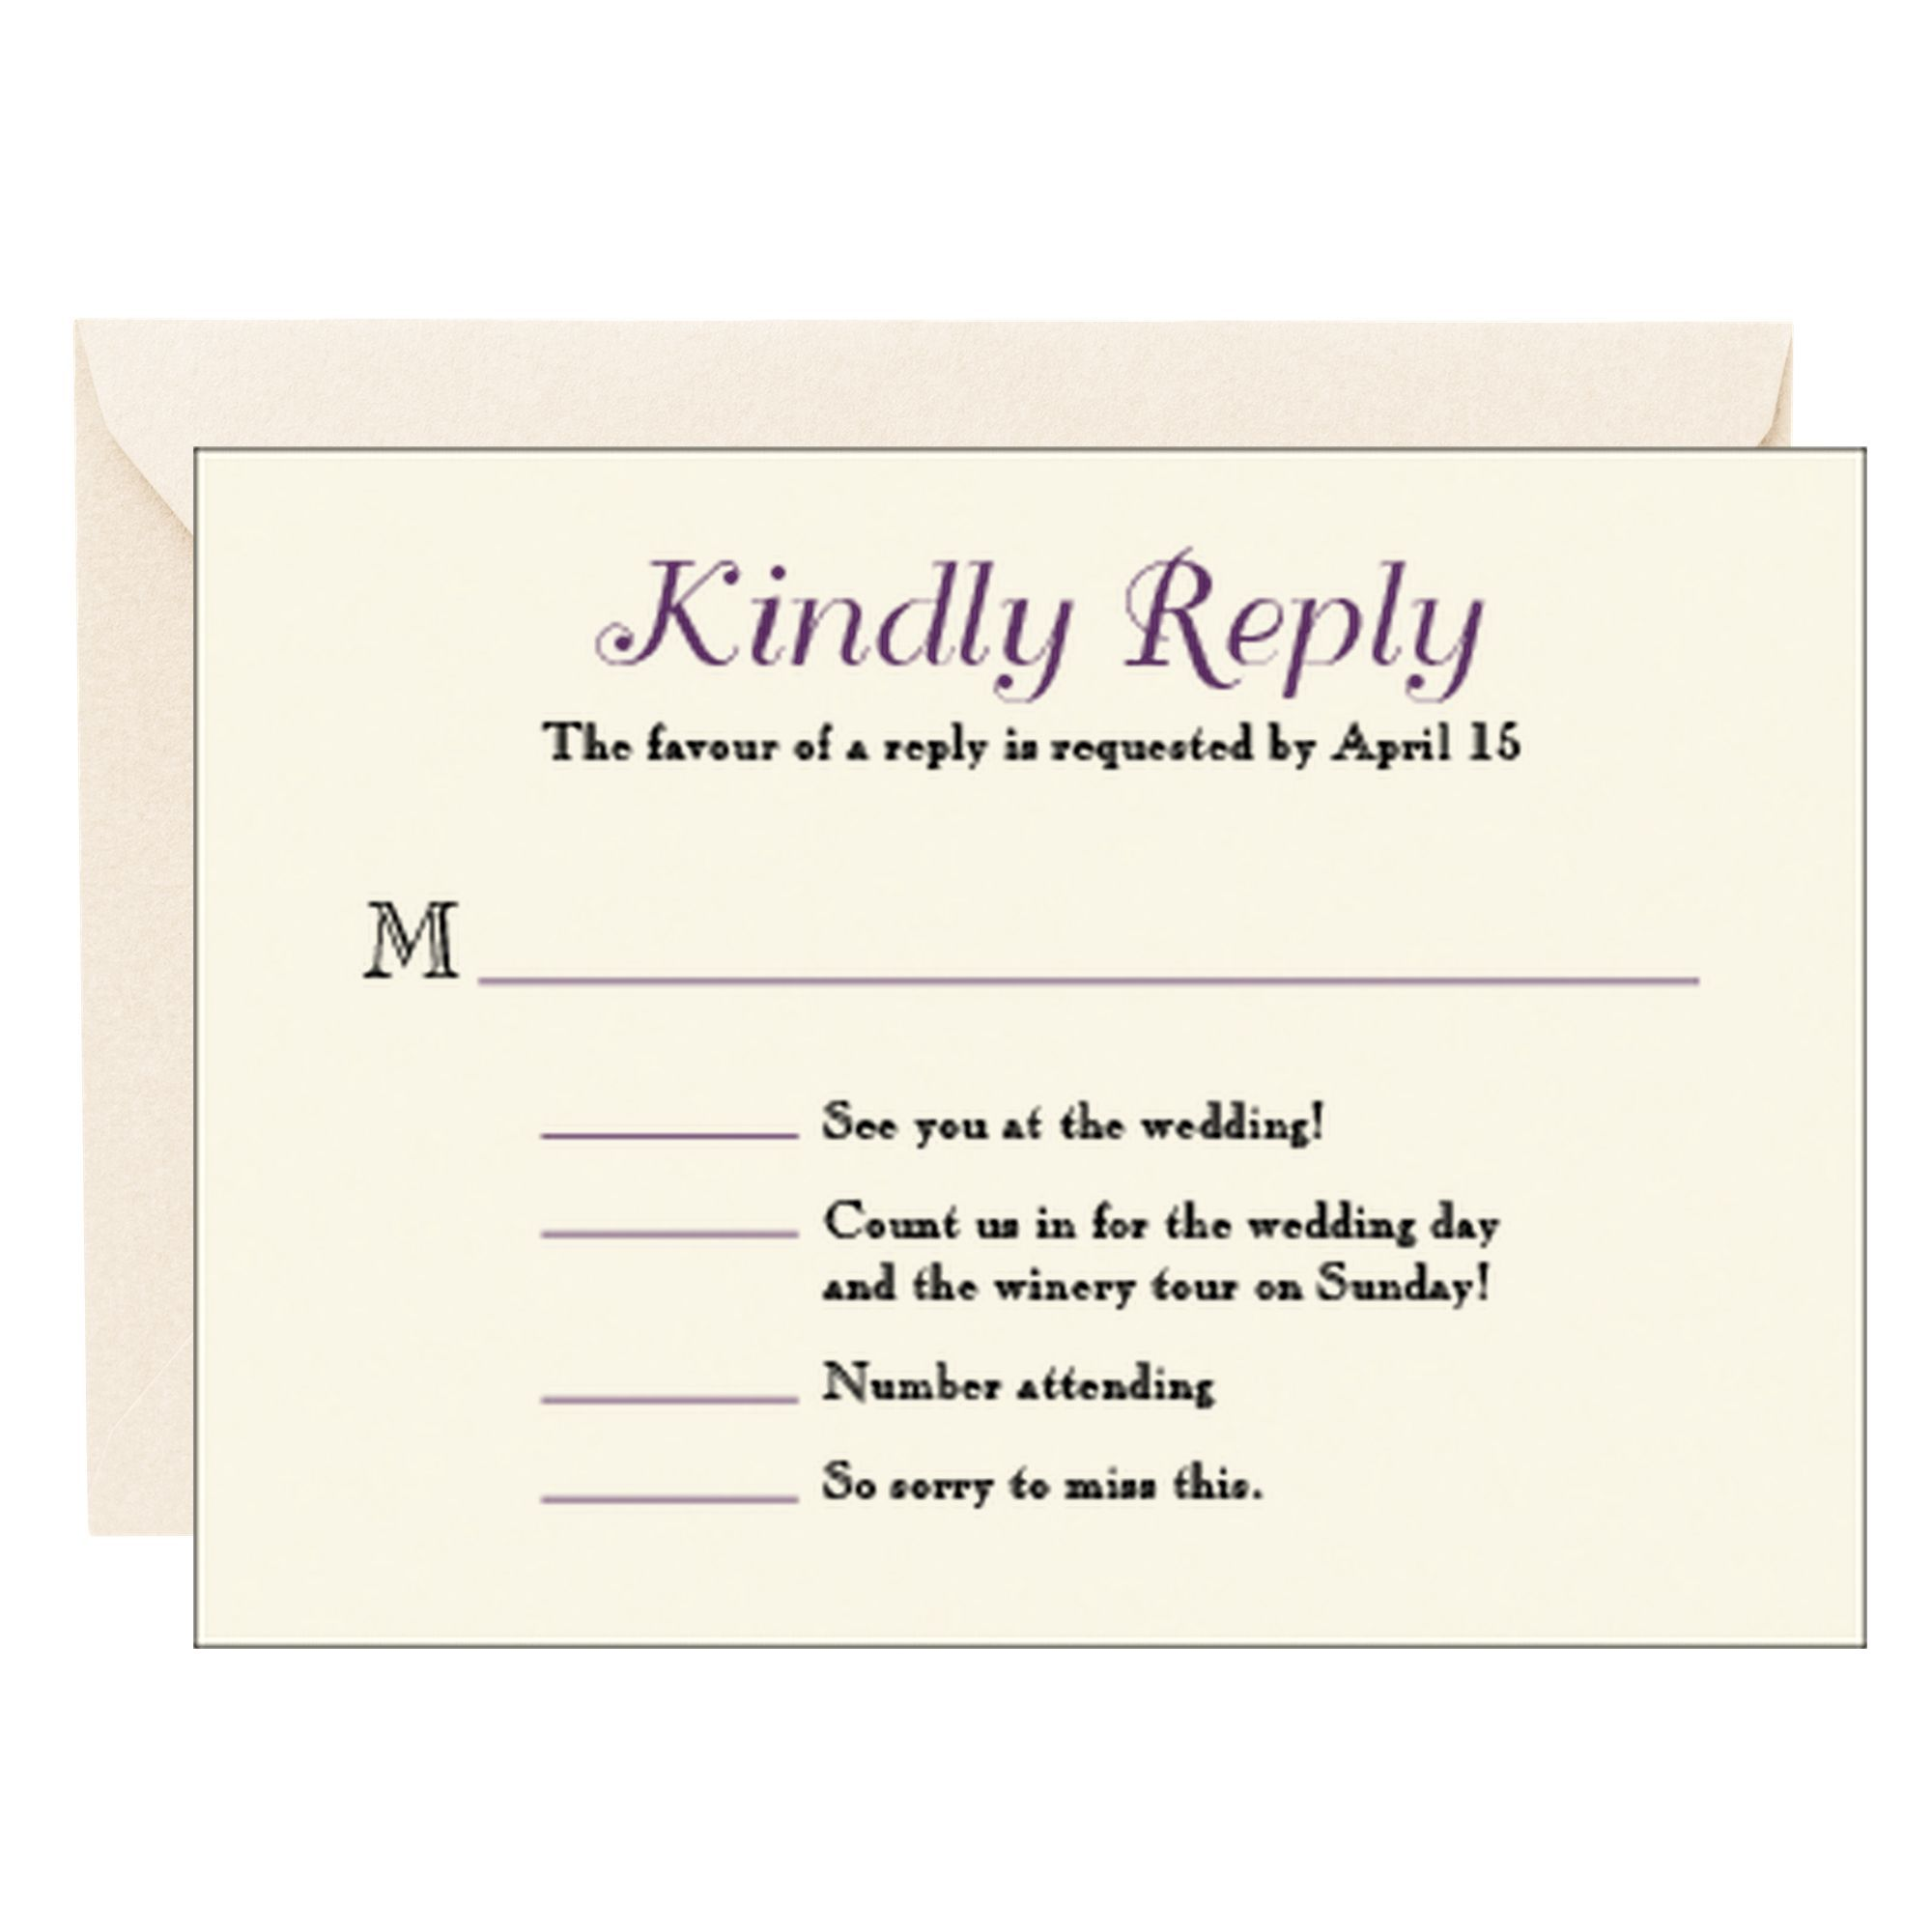 Leaves Wedding Response Card with casual form for guests to reply ...